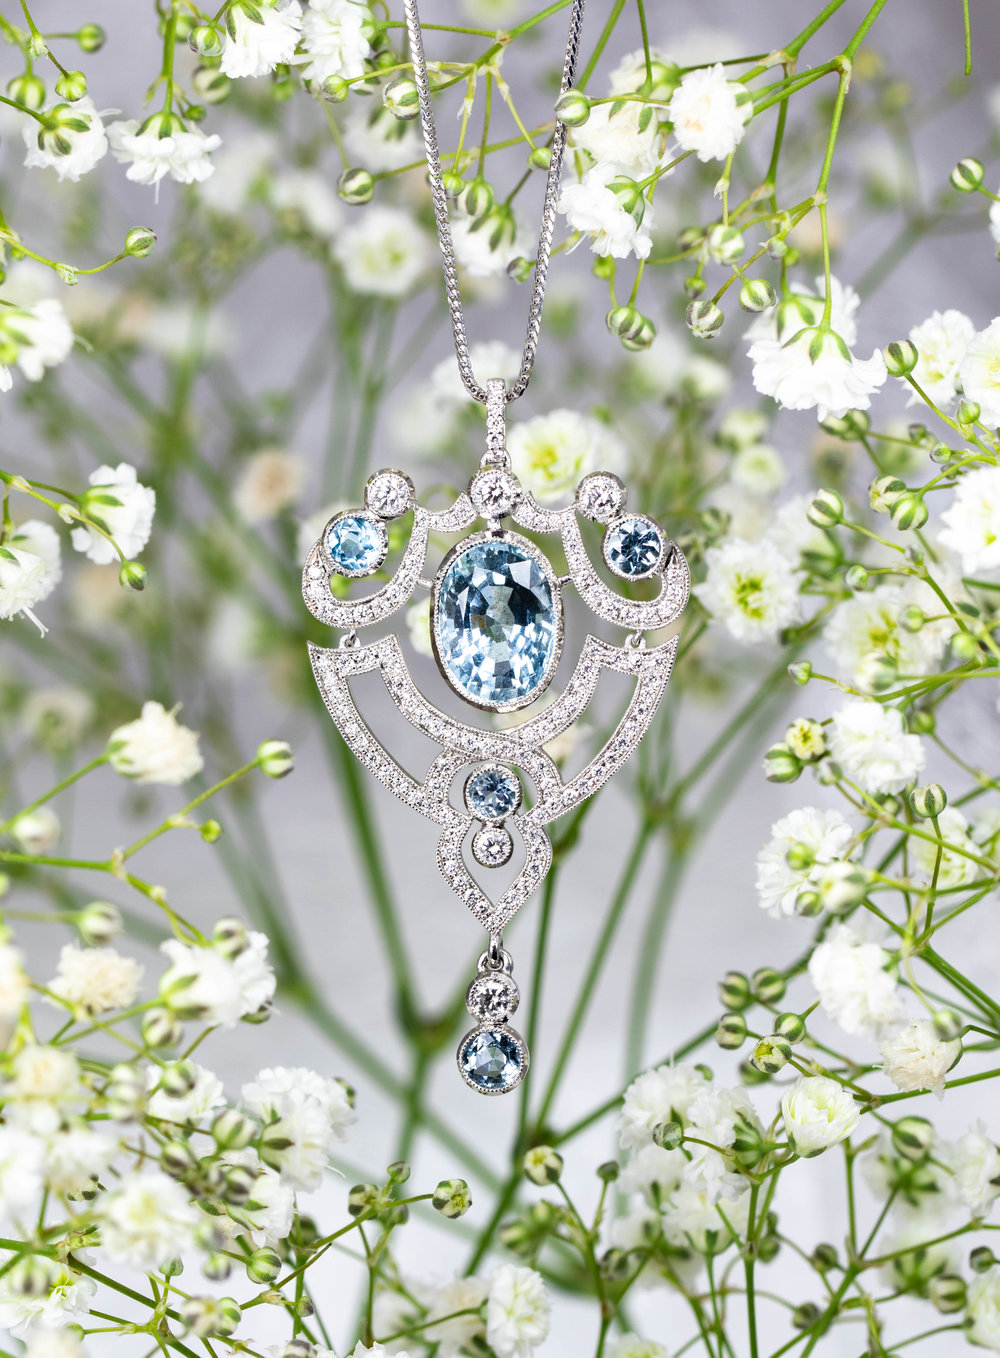 Belle Epoque style aquamarine and diamond set pendant. Made in Chichester, England.